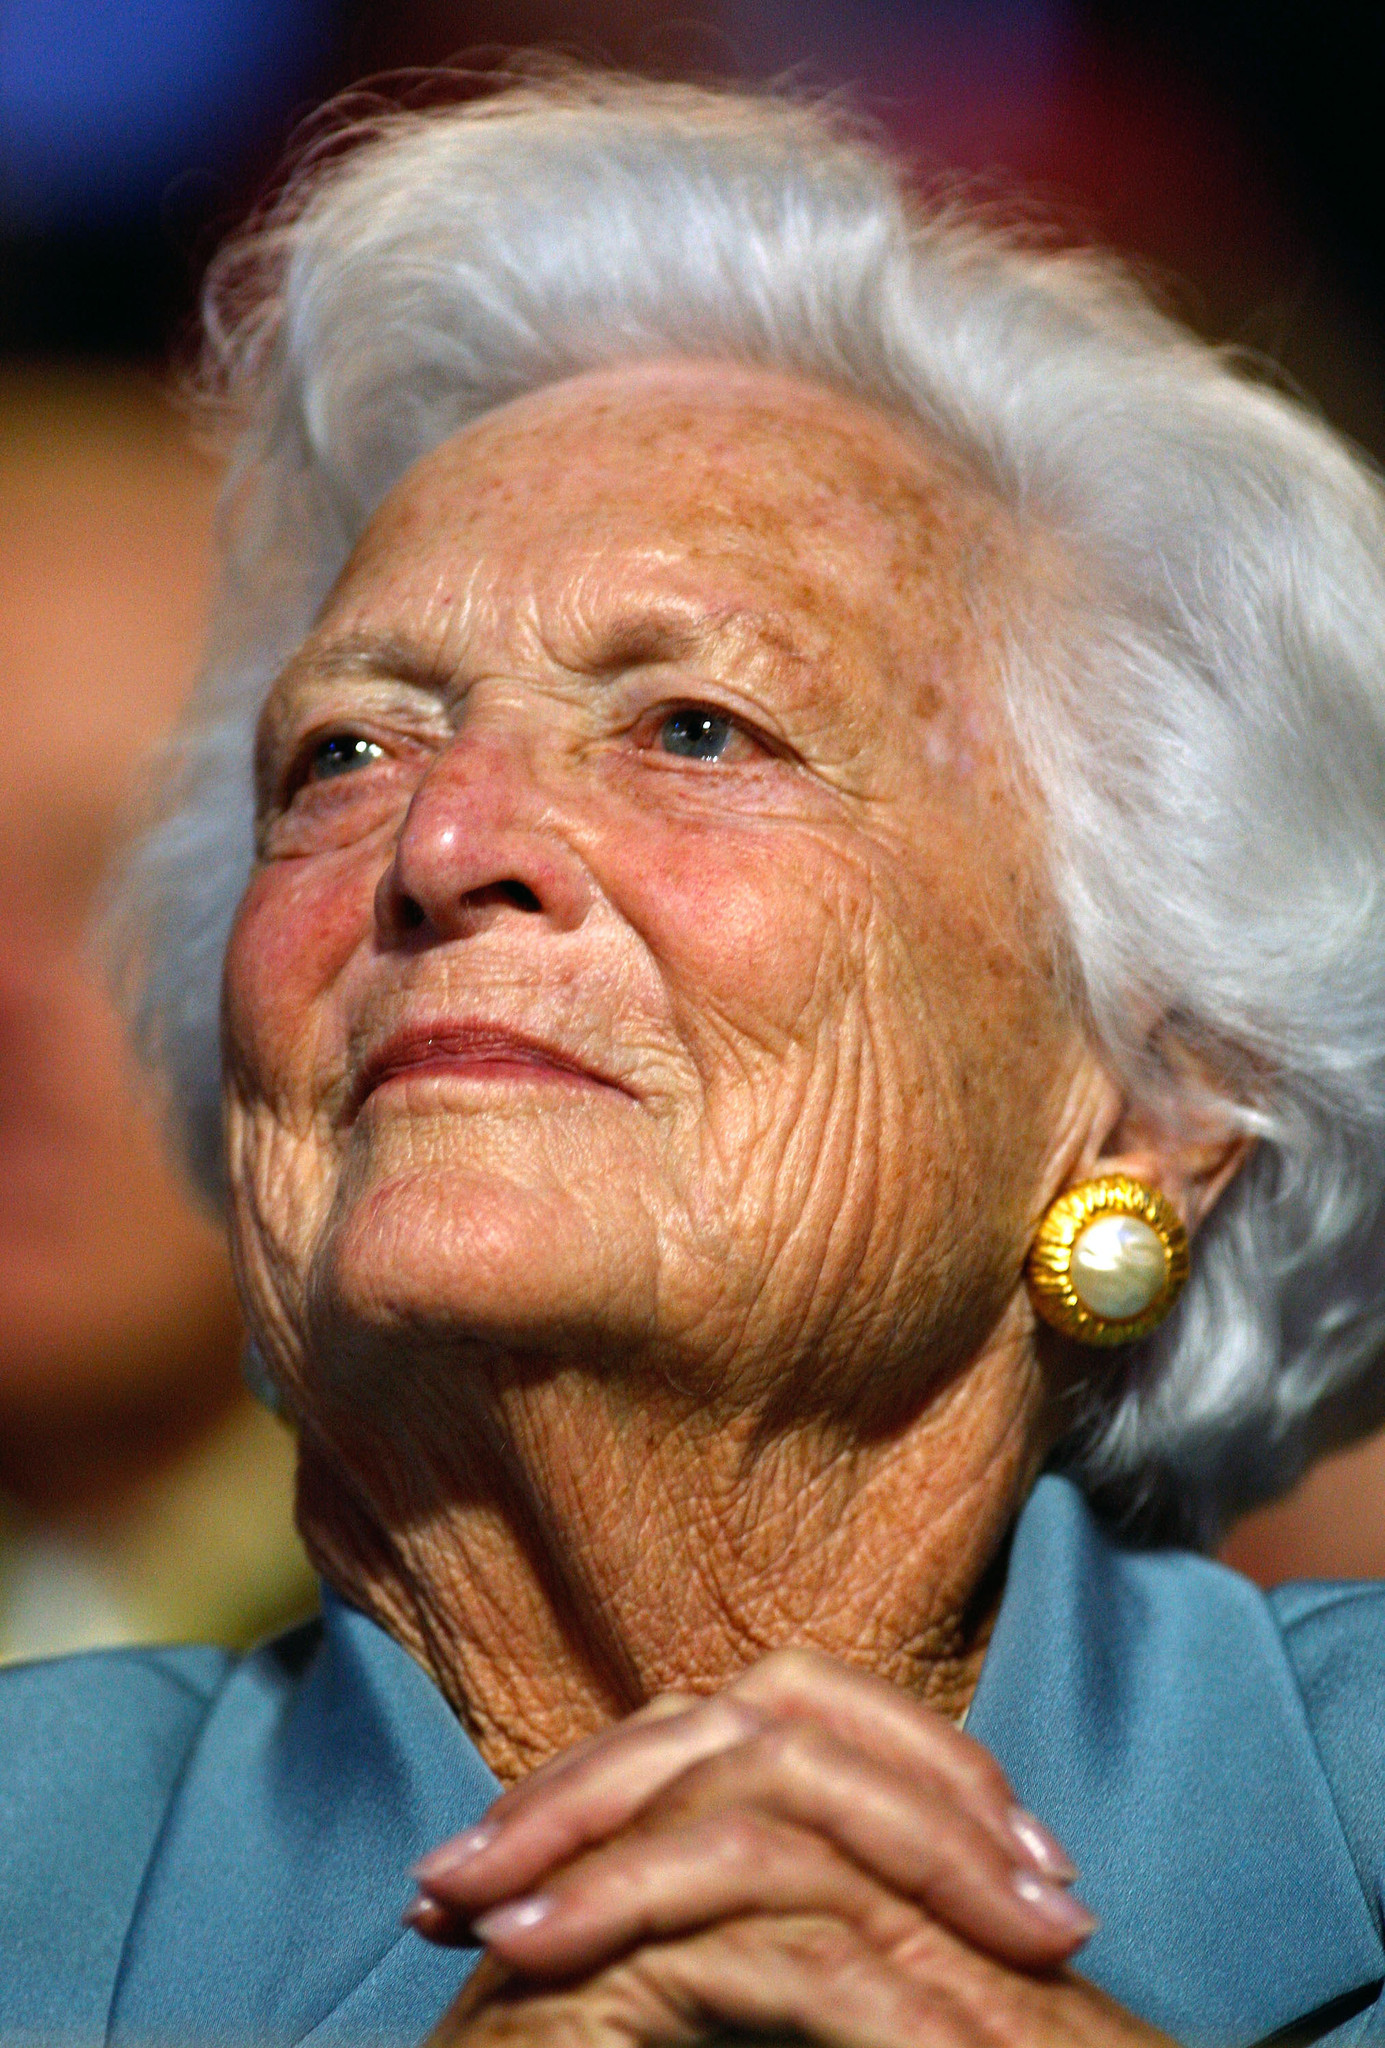 Pictures: Cruise ship godmothers - Barbara Bush